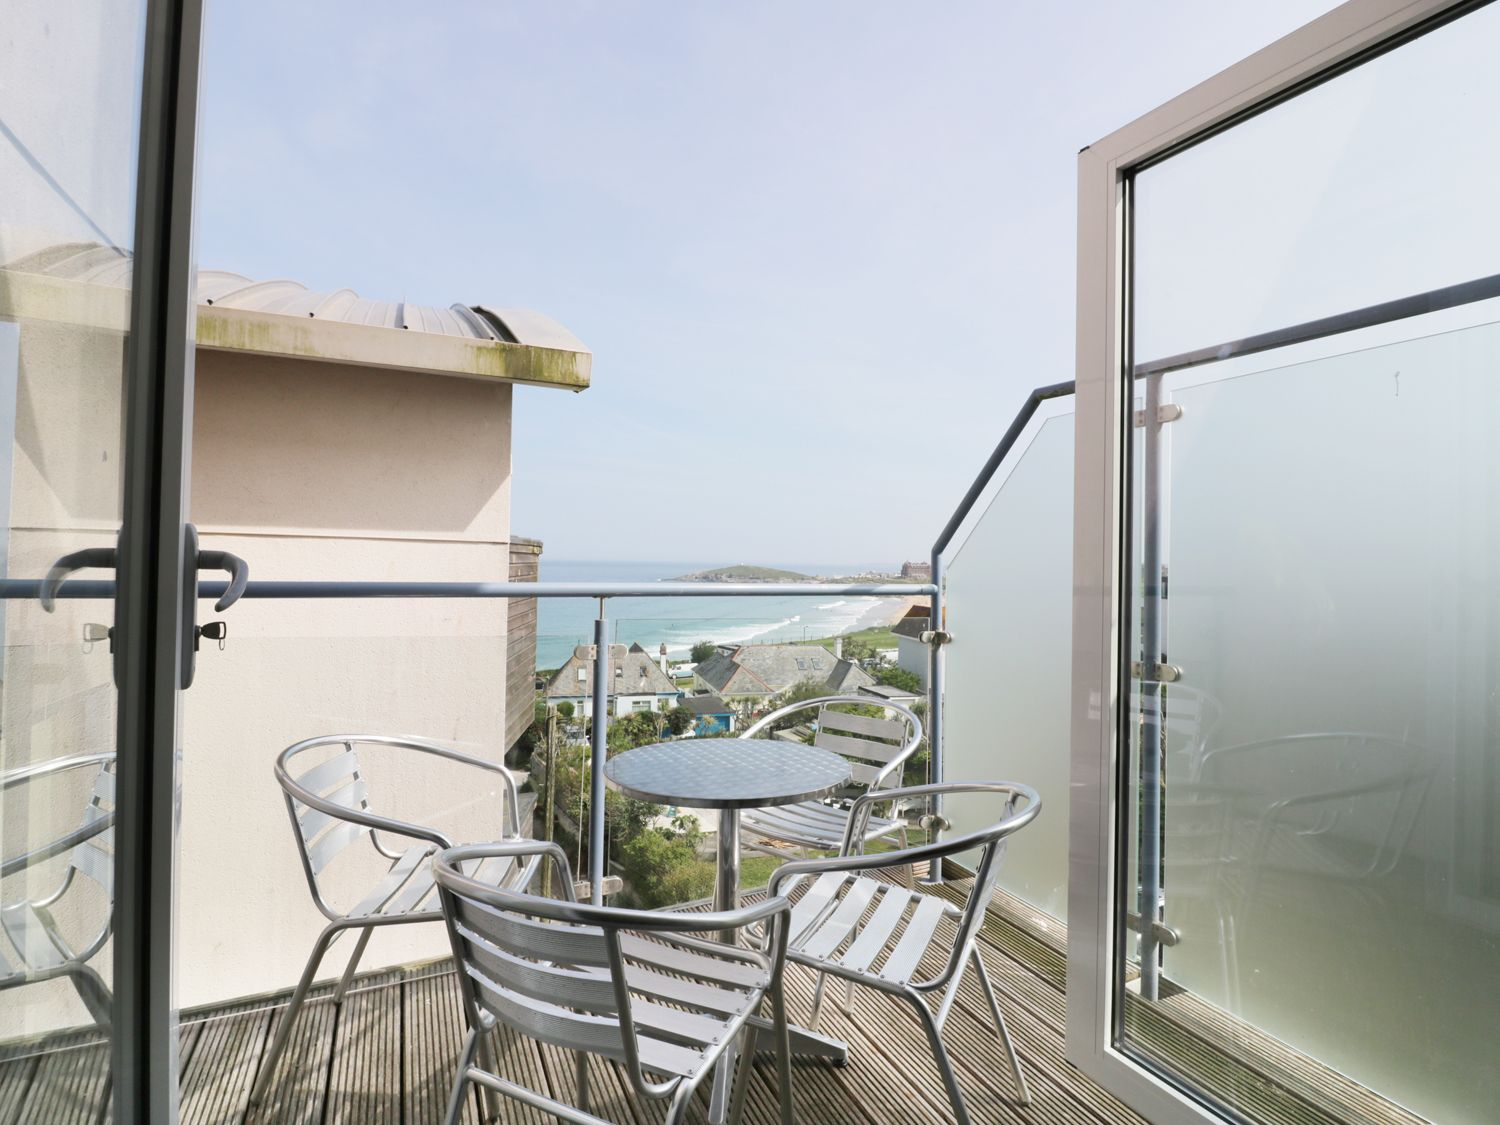 Fistral Outlook in Newquay - sleeps 6 people